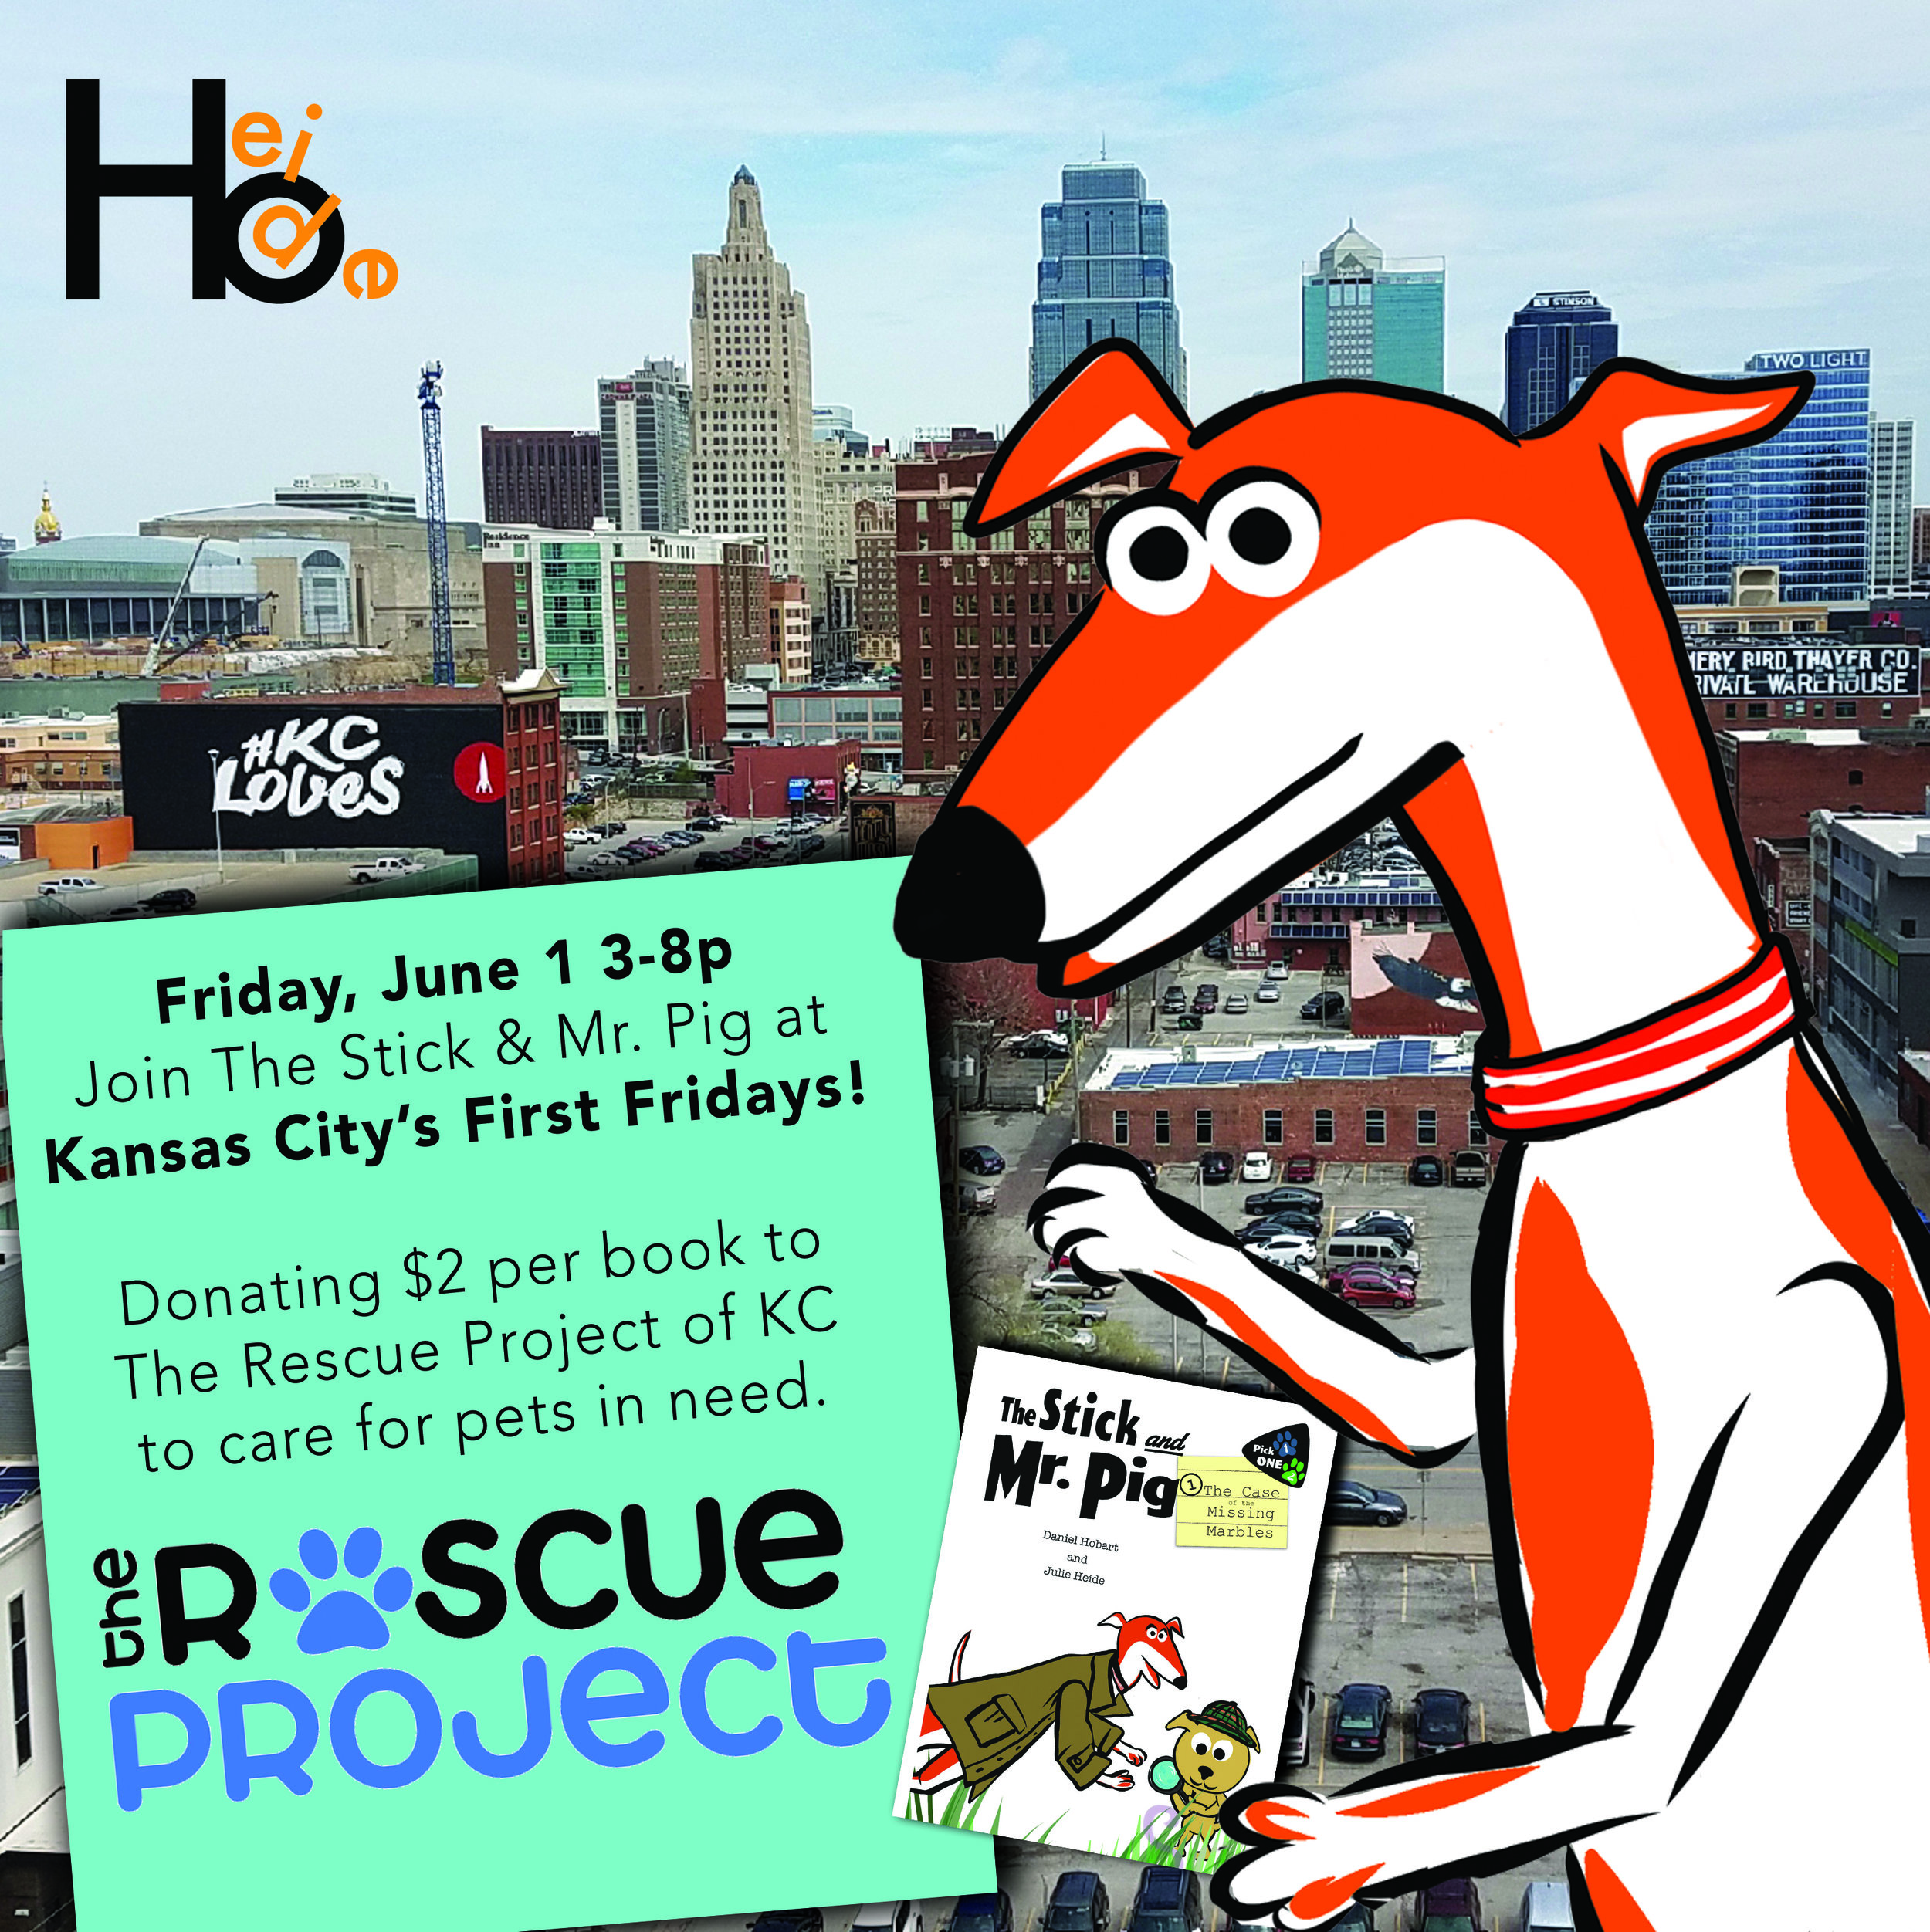 Downtown First Friday! - Join us for selling and signing in collaboration with The Rescue Project of KC. HeideHo will donate $2 from each book sale in support of pets in need. See you there!